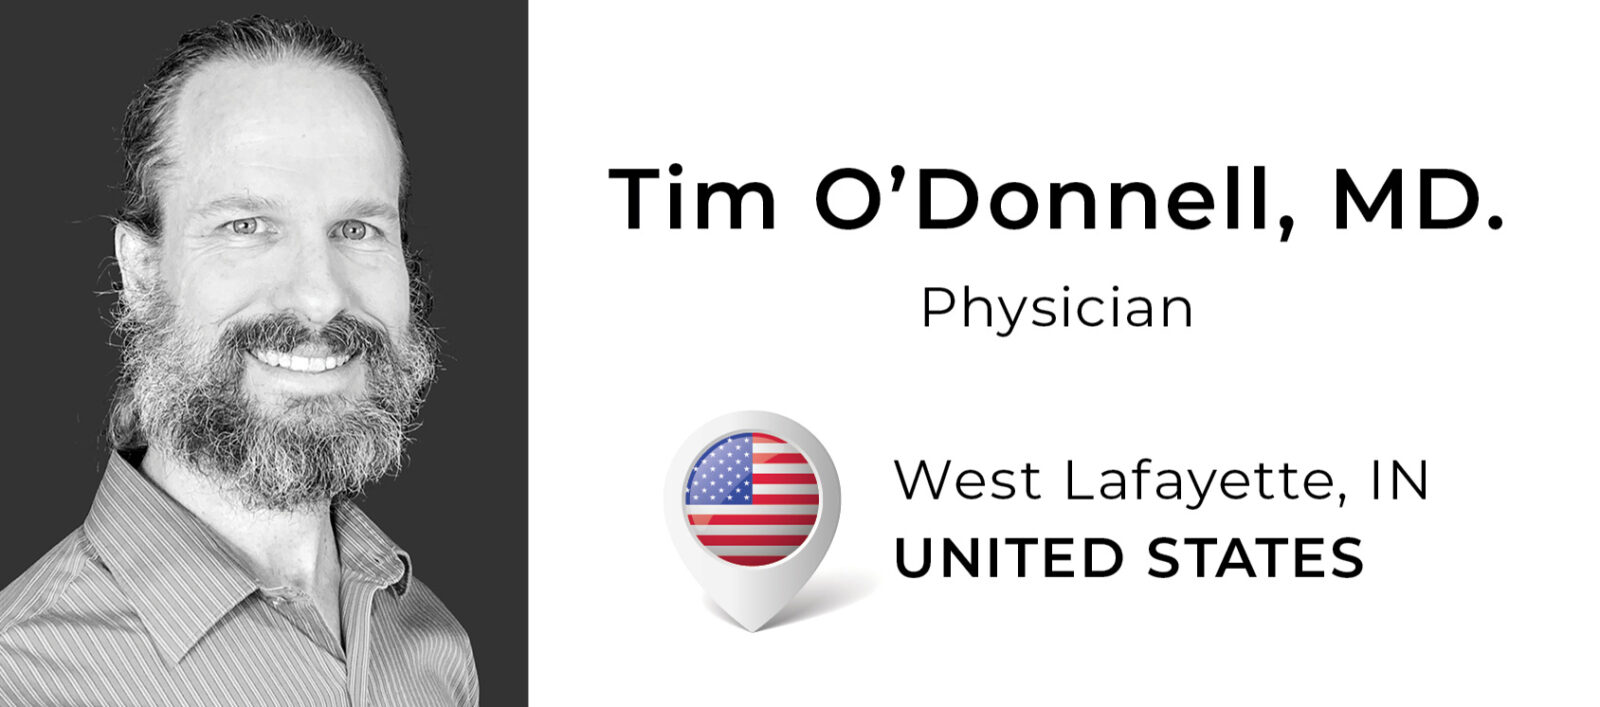 Tim O'Donnell, MD.